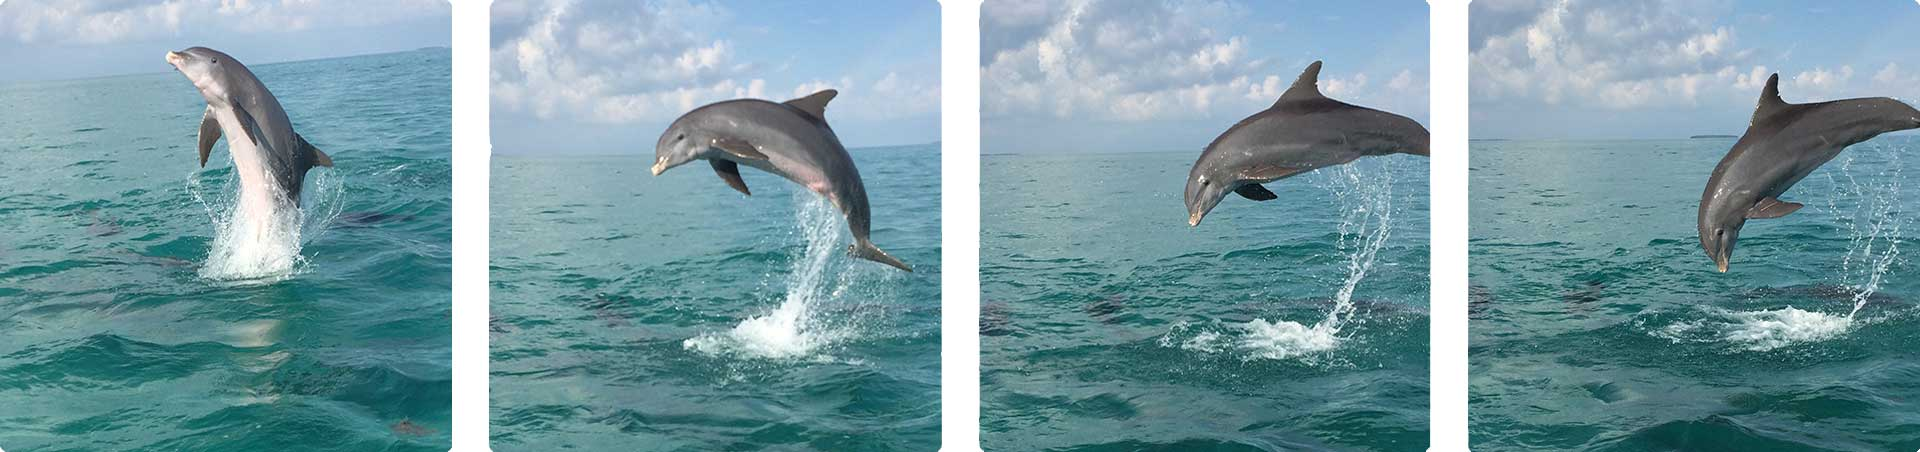 Dolphins jumping in the Gulf of Mexico